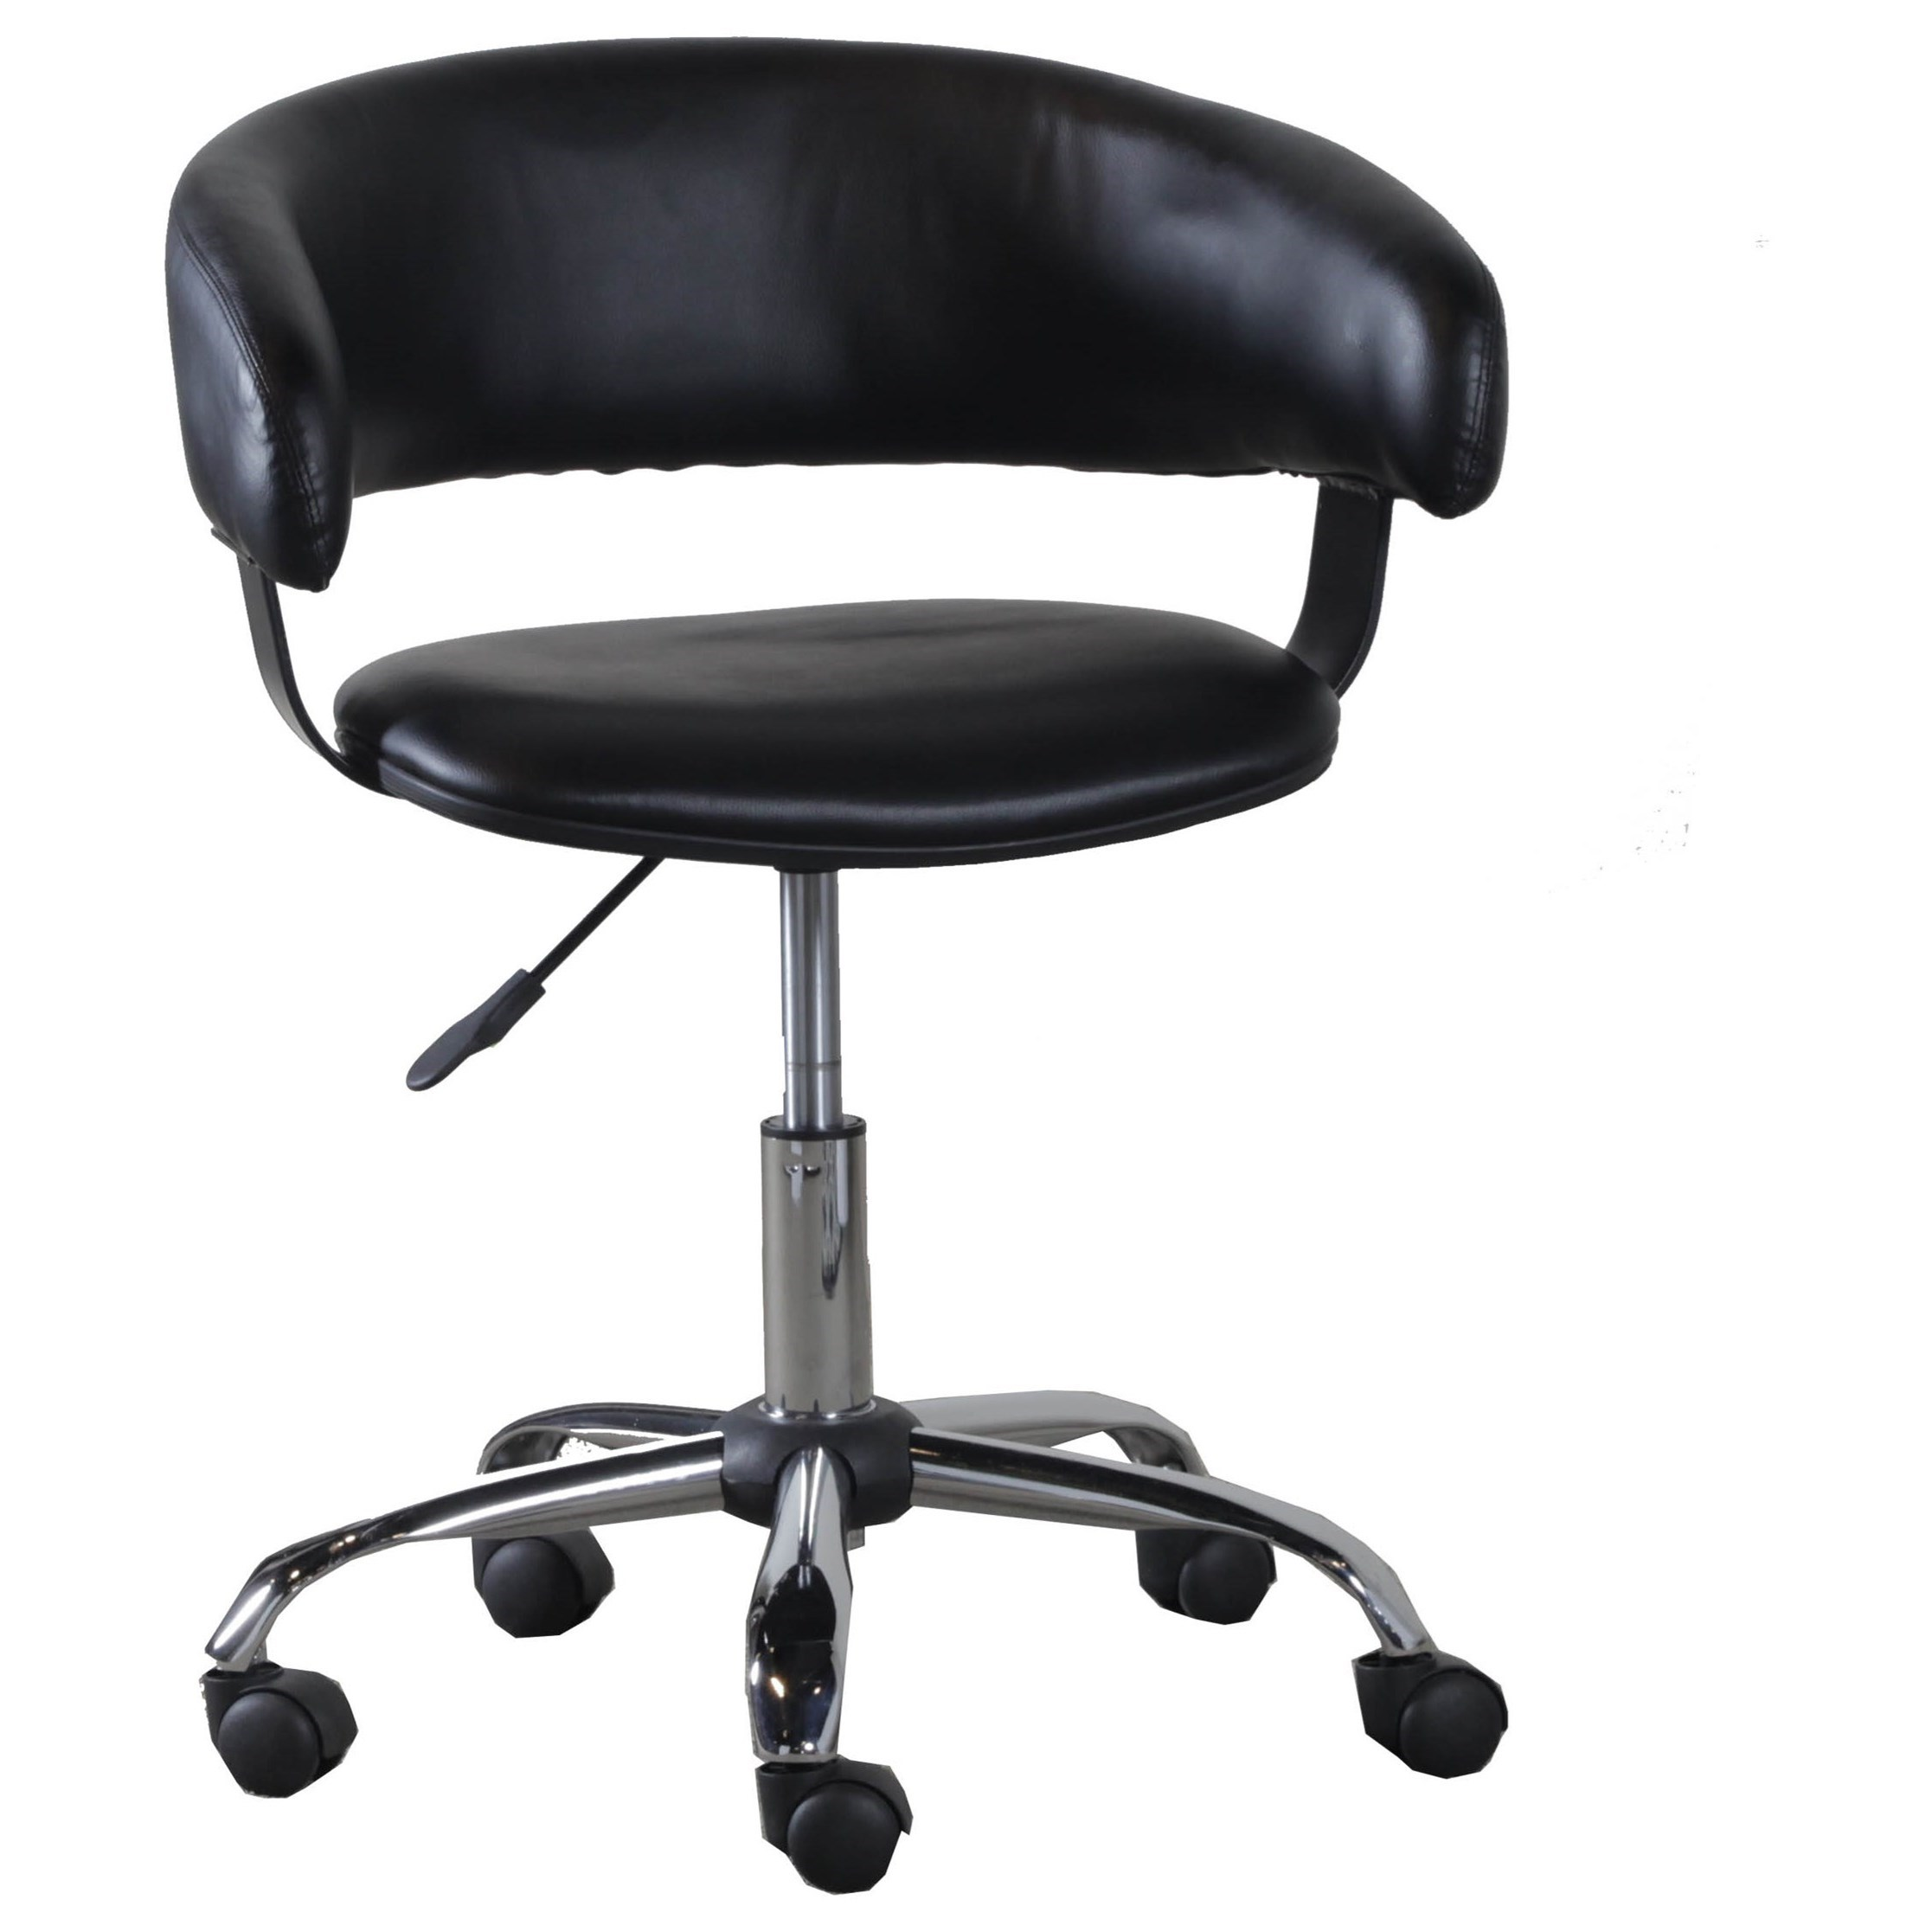 Accent Furniture Black Gas Lift Desk Chair by Powell at Goffena Furniture & Mattress Center